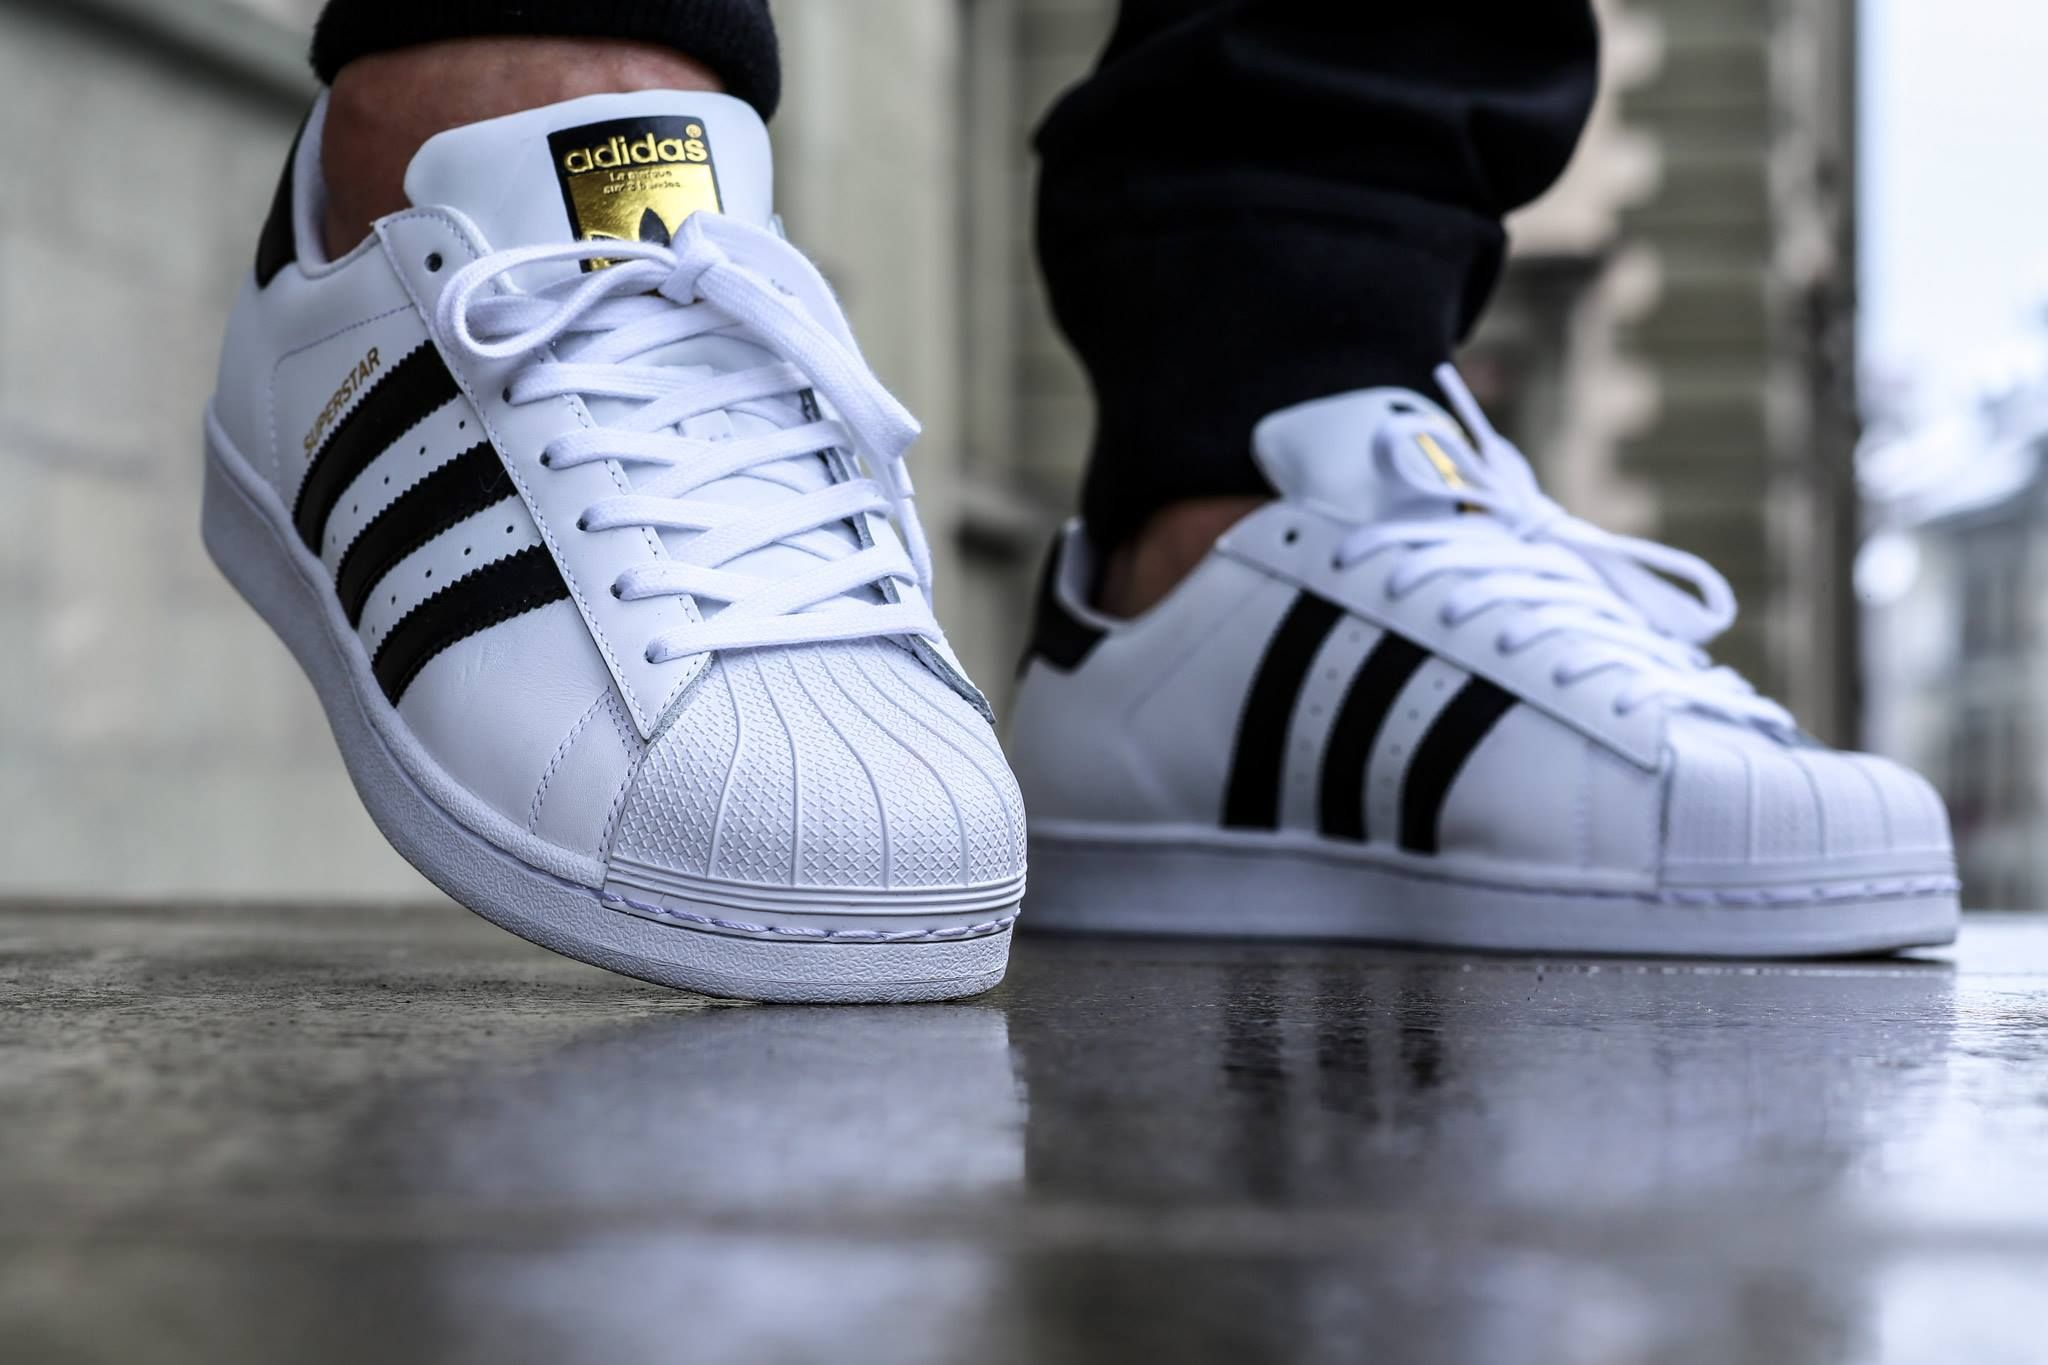 Adidas superstars are really unique. I like how they can easily be  identified by the three stripes. I really like the choices of colors that  they use. c3a36ede262